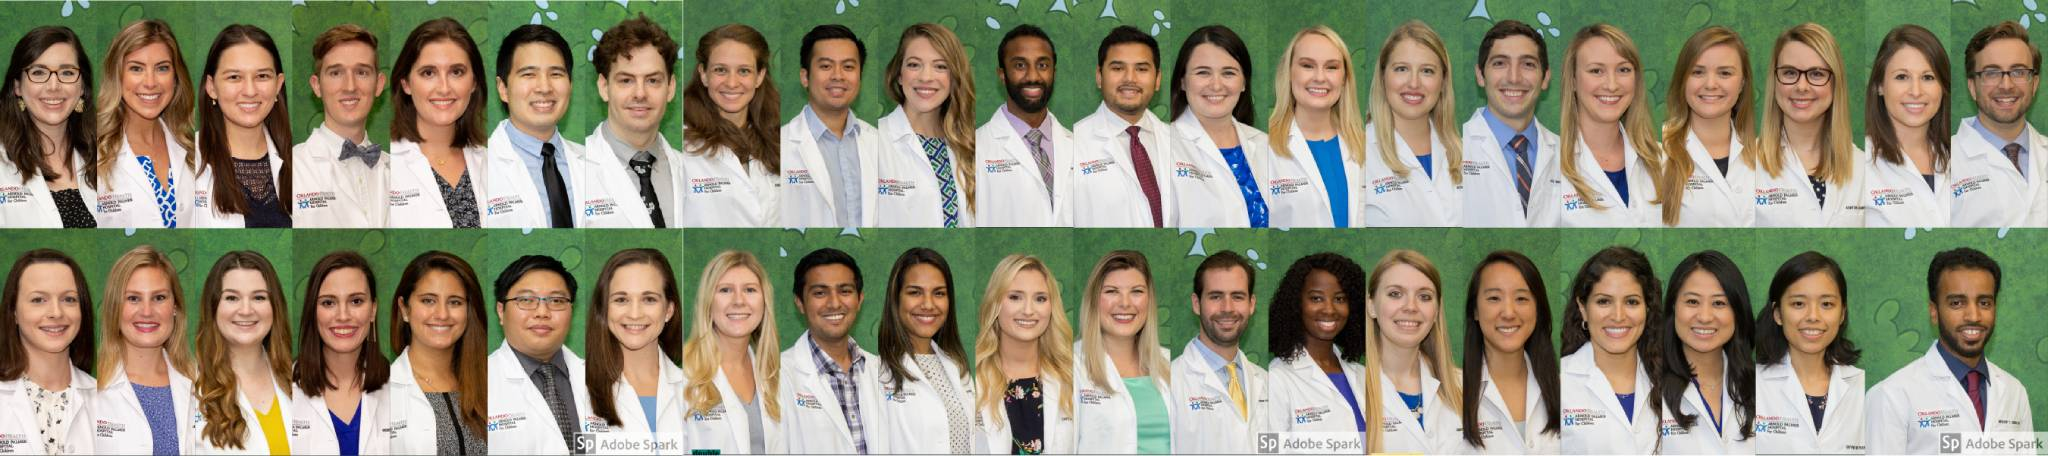 PGY Class 1-3